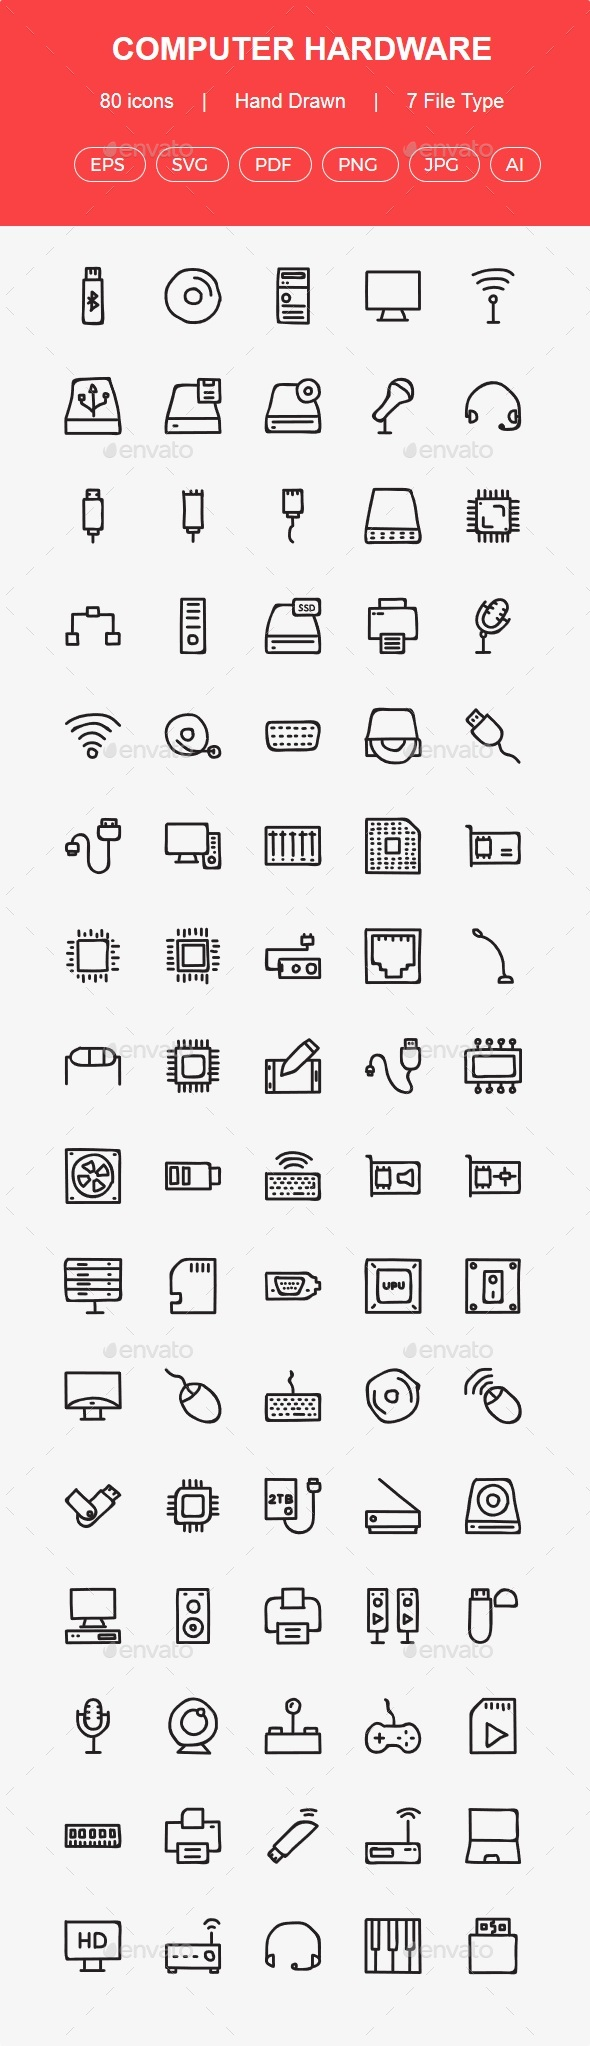 80 Computer Hardware Hand Drawn icons - Technology Icons